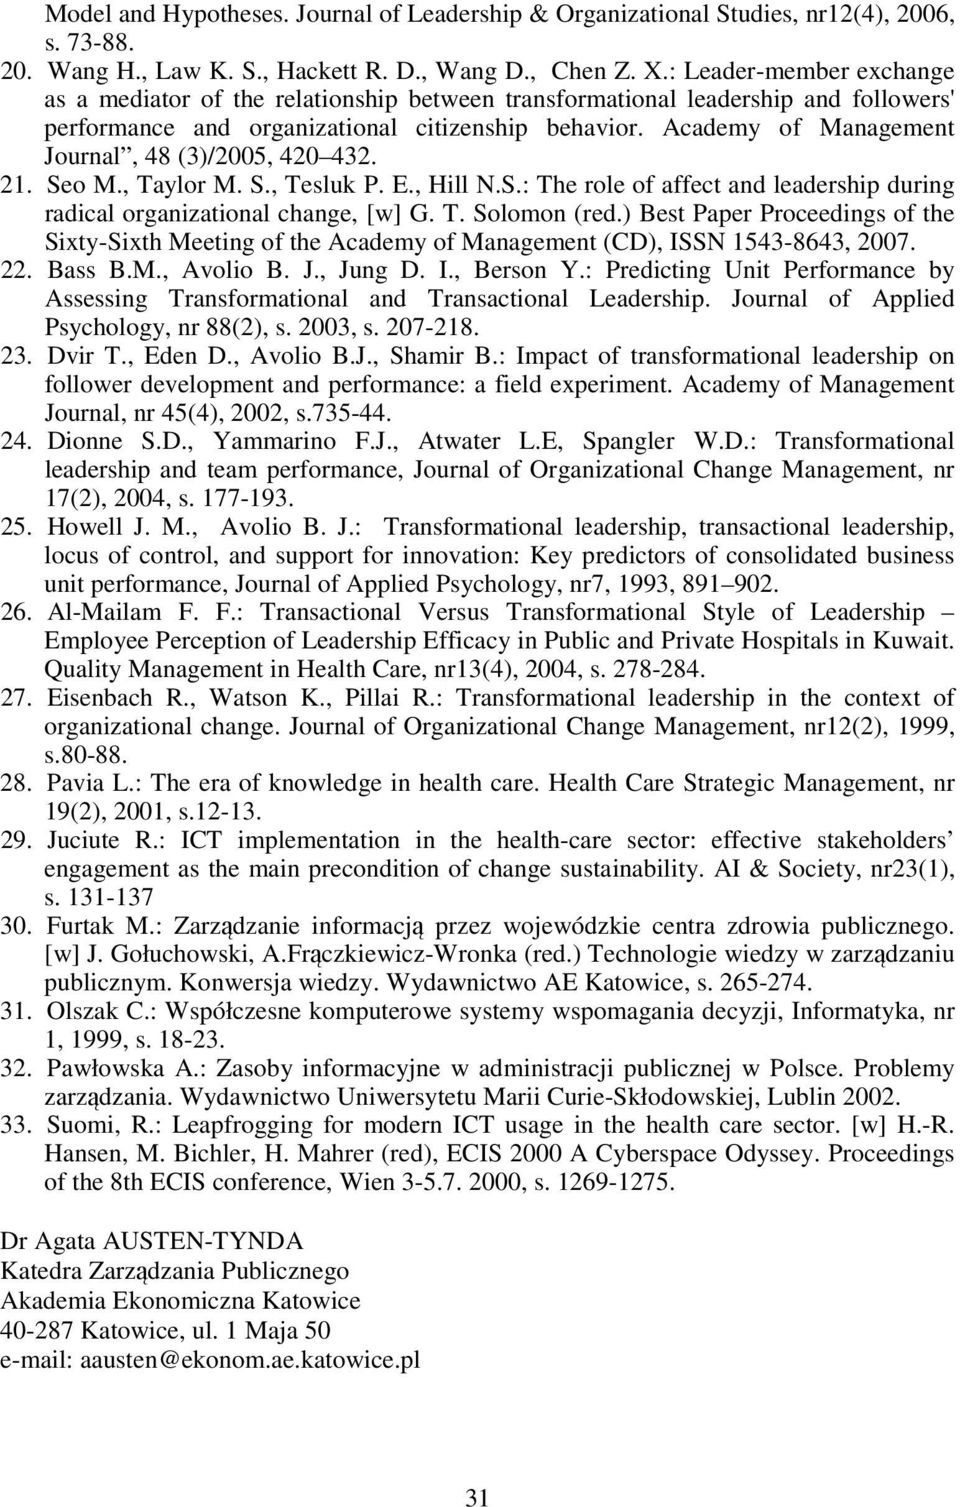 Academy of Management Journal, 48 (3)/2005, 420 432. 21. Seo M., Taylor M. S., Tesluk P. E., Hill N.S.: The role of affect and leadership during radical organizational change, [w] G. T. Solomon (red.